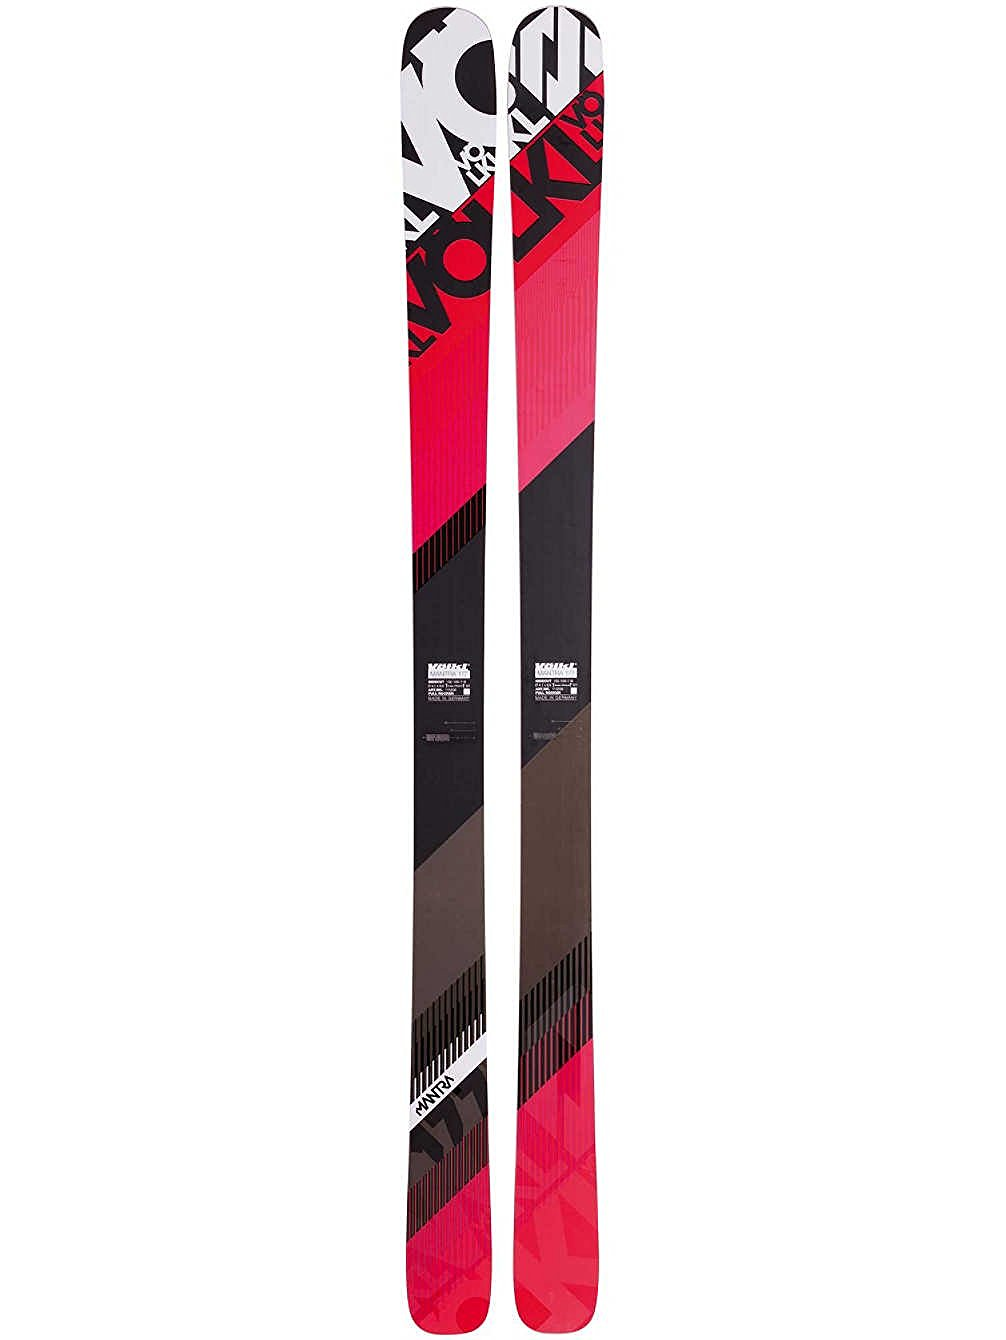 Volkl Mens Mantra Skis with Full Rocker Base, Full Titanal Construction, Multi Layer Woodcore